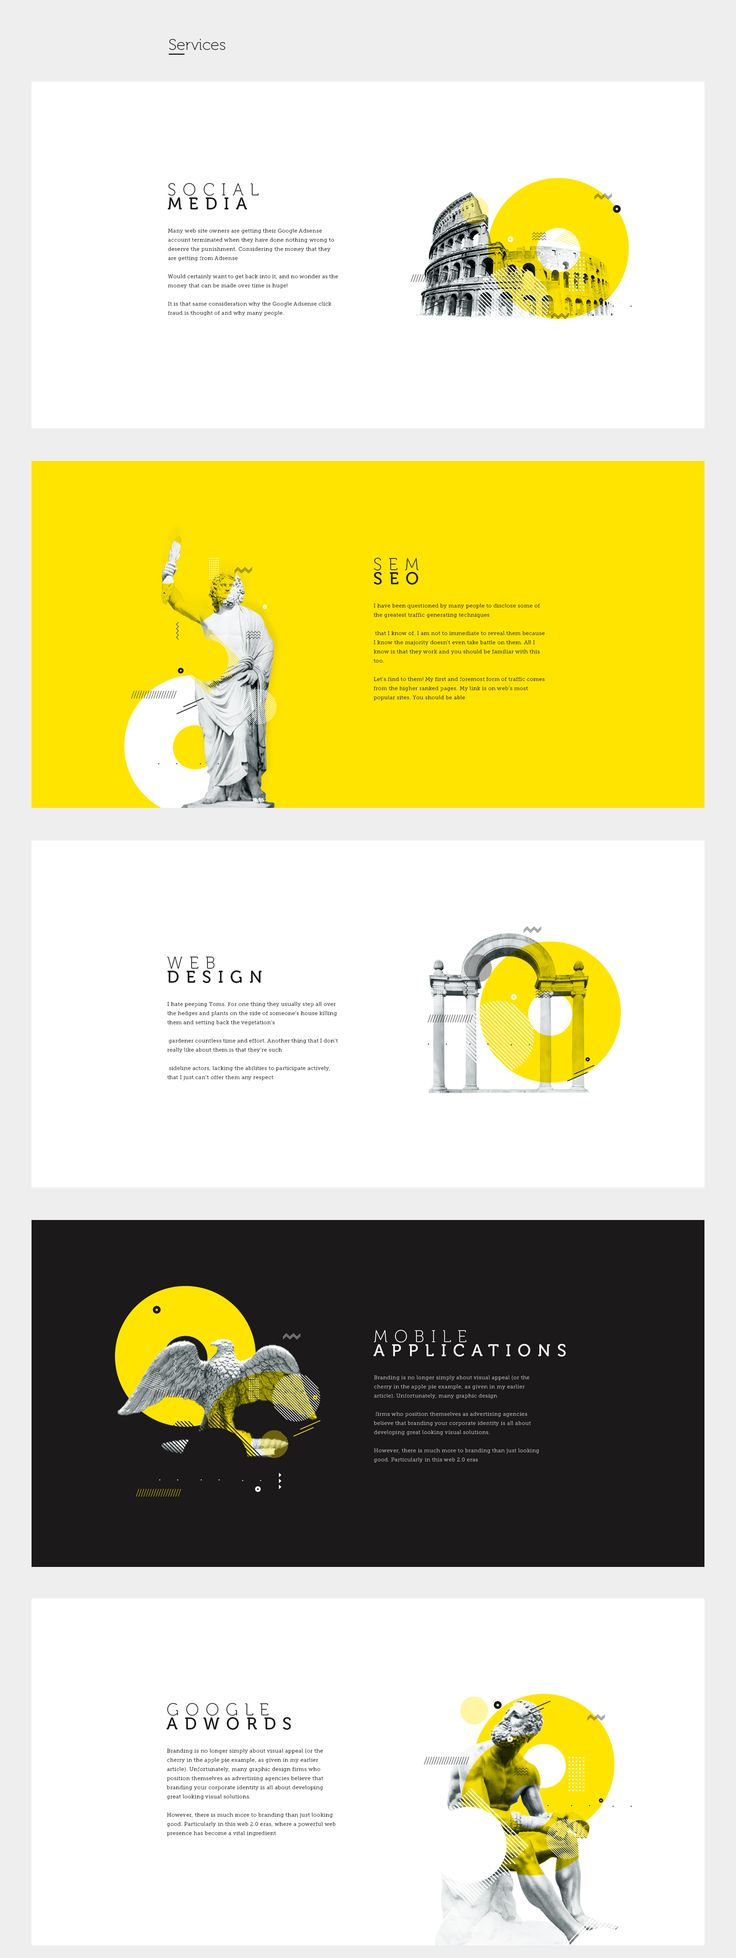 best online presentation ideas marketing dottopia web design for graphics services yellow website interesting use of yellow color plus yellow circular design element combined images